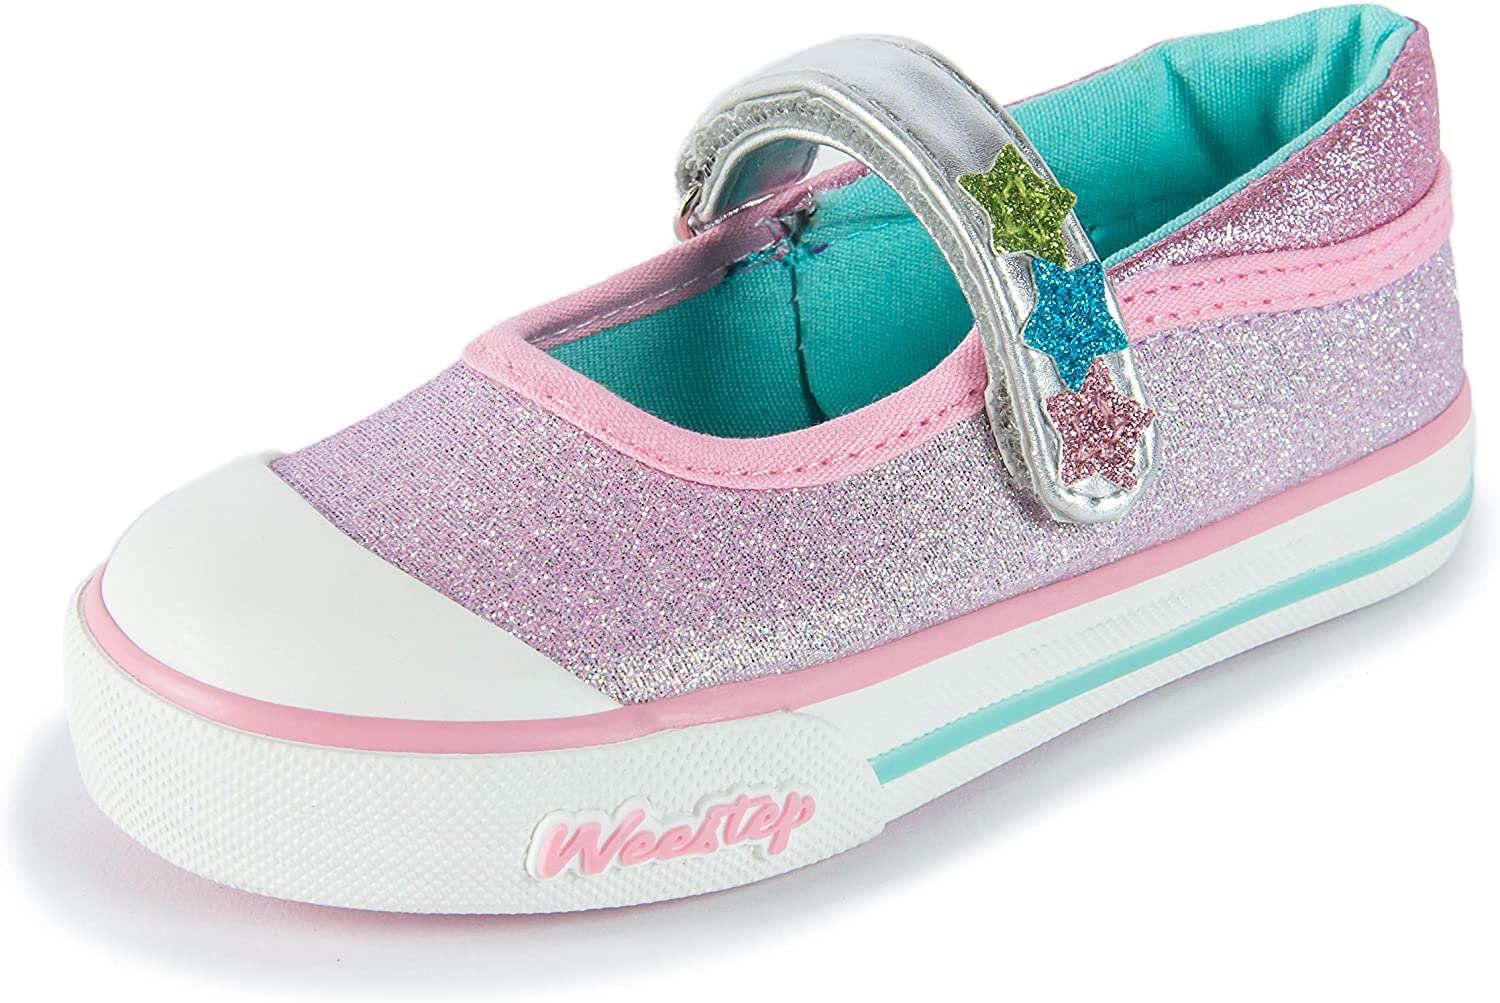 NEW Toddler Girls Tennis Shoes Size 6 Pink Glitter Mary Janes Sneakers Slip On